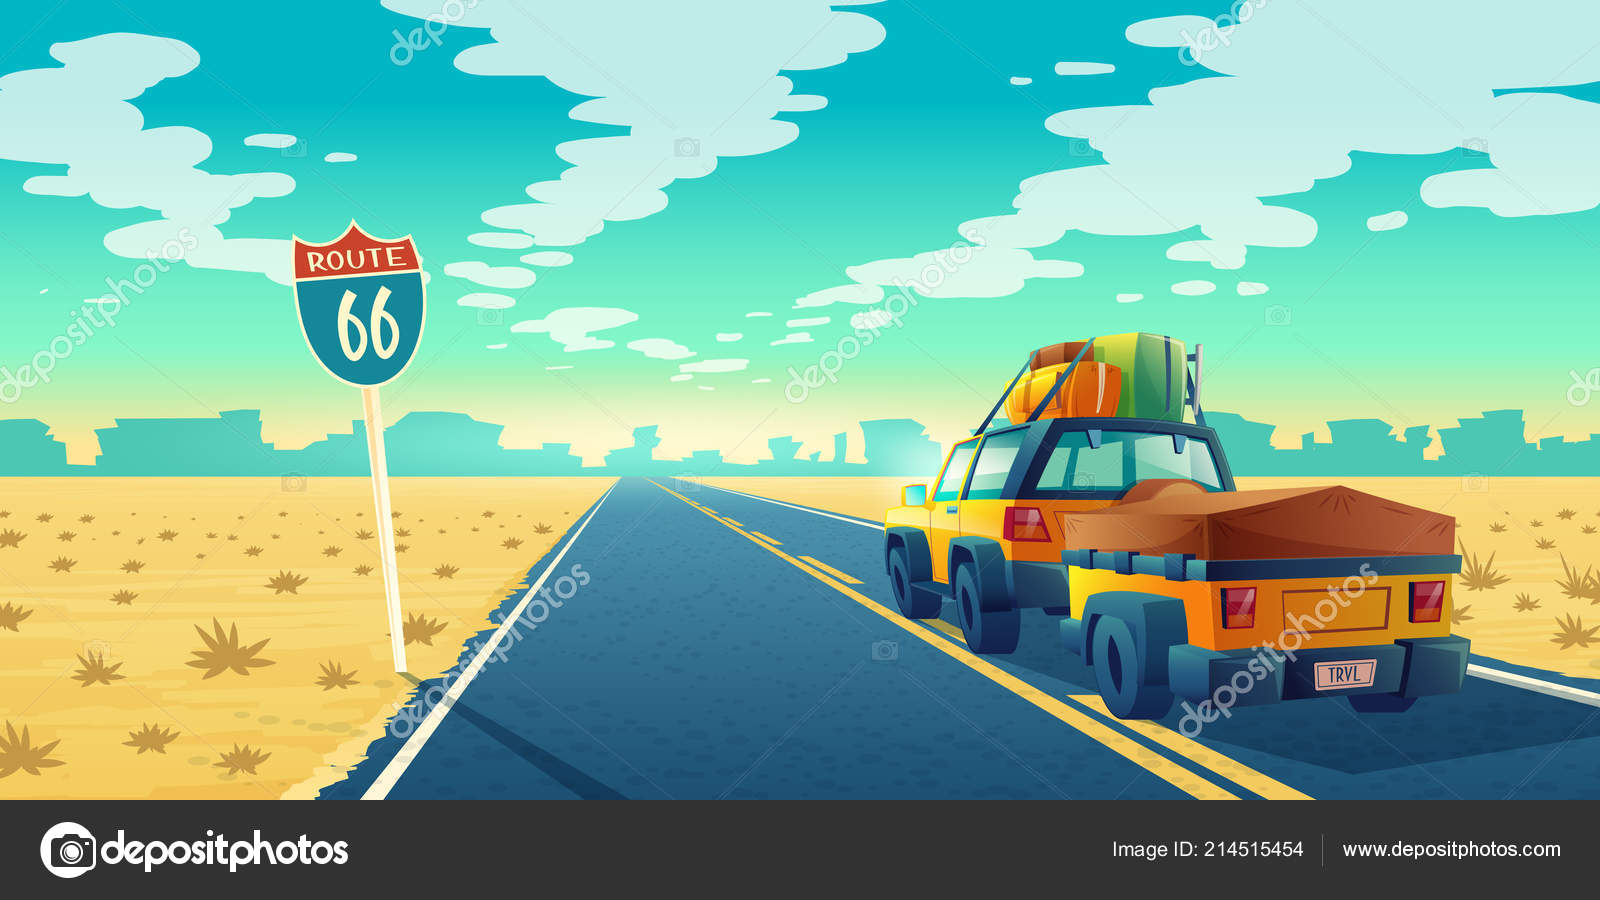 Jeep Wallpaper Hd Vector Tourist Concept Desert With